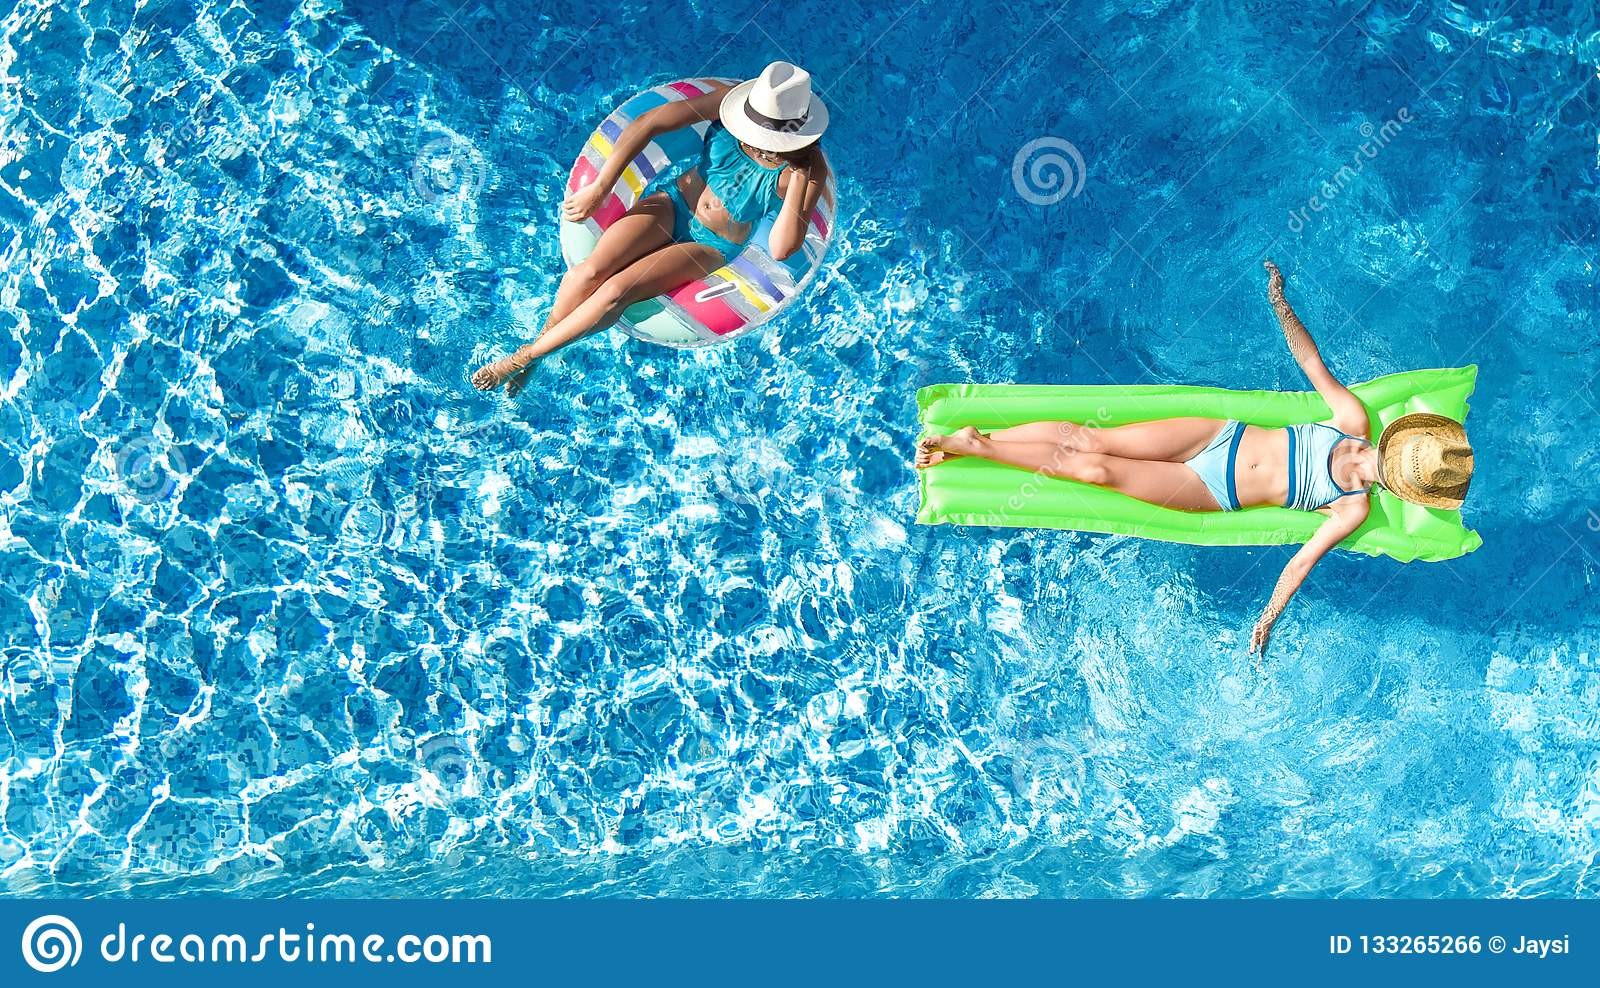 Children in swimming pool aerial drone view fom above, happy kids swim on inflatable ring donut and mattress, girls have fun